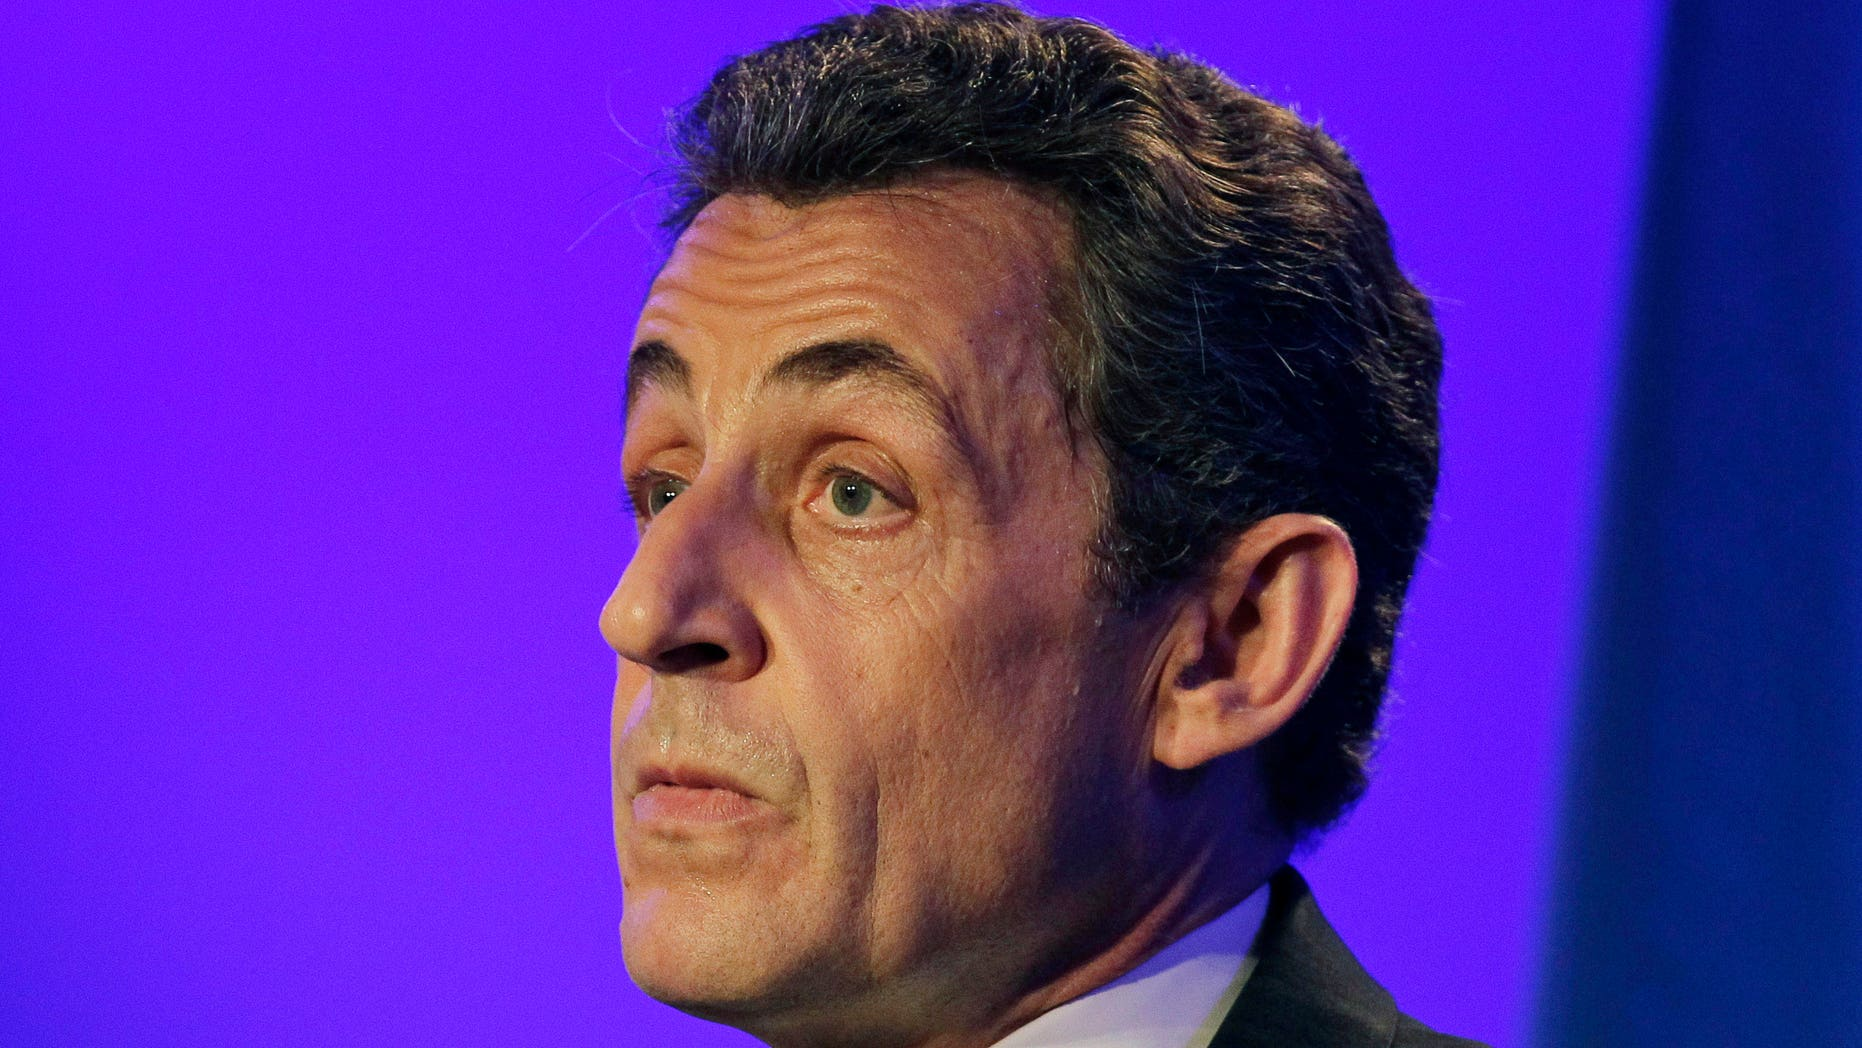 May 4, 2012: This photo shows France's then President  and conservative candidate for re-election in 2012, Nicolas Sarkozy as he delivers a speech during a campaign meeting in Sables d'Ollonne, western France.